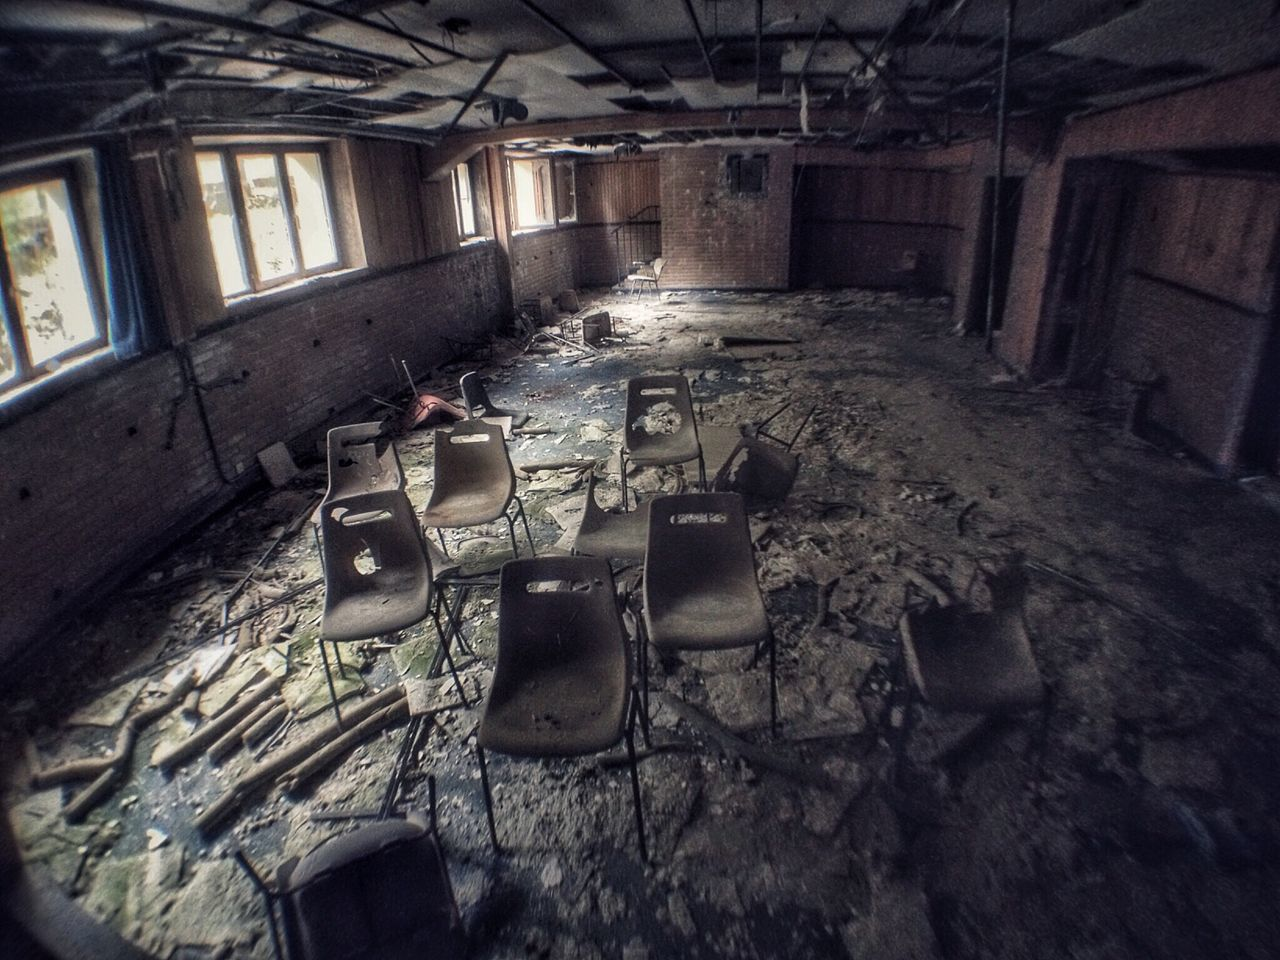 Abandoned Obsolete Messy Damaged Run-down Indoors  Bad Condition Window Ruined Worn Out Old Ruin Broken Interior Deterioration Destruction Weathered Empty No People Discarded Desolate